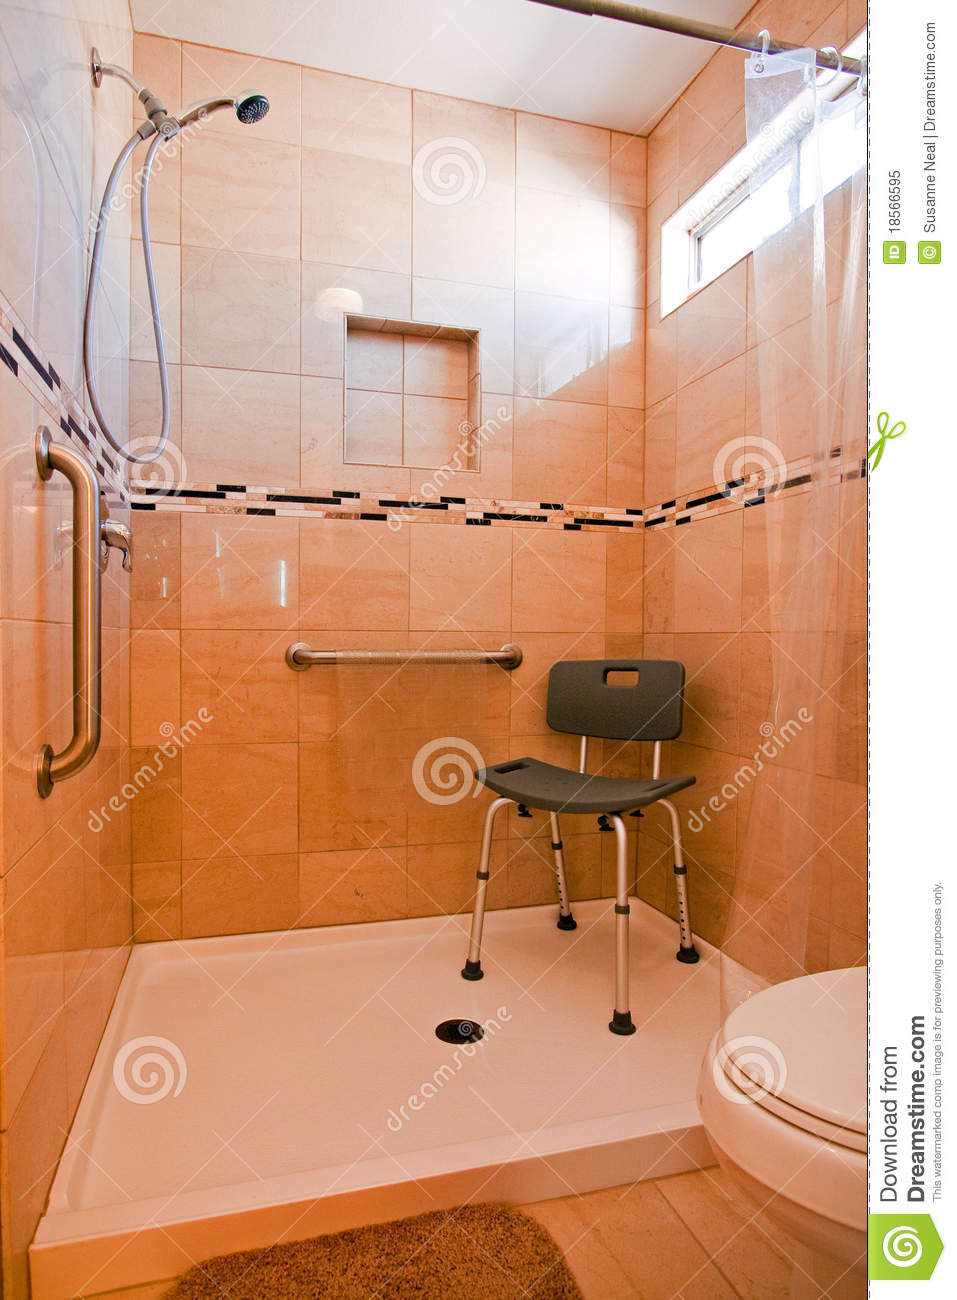 Amazoncom shower stalls